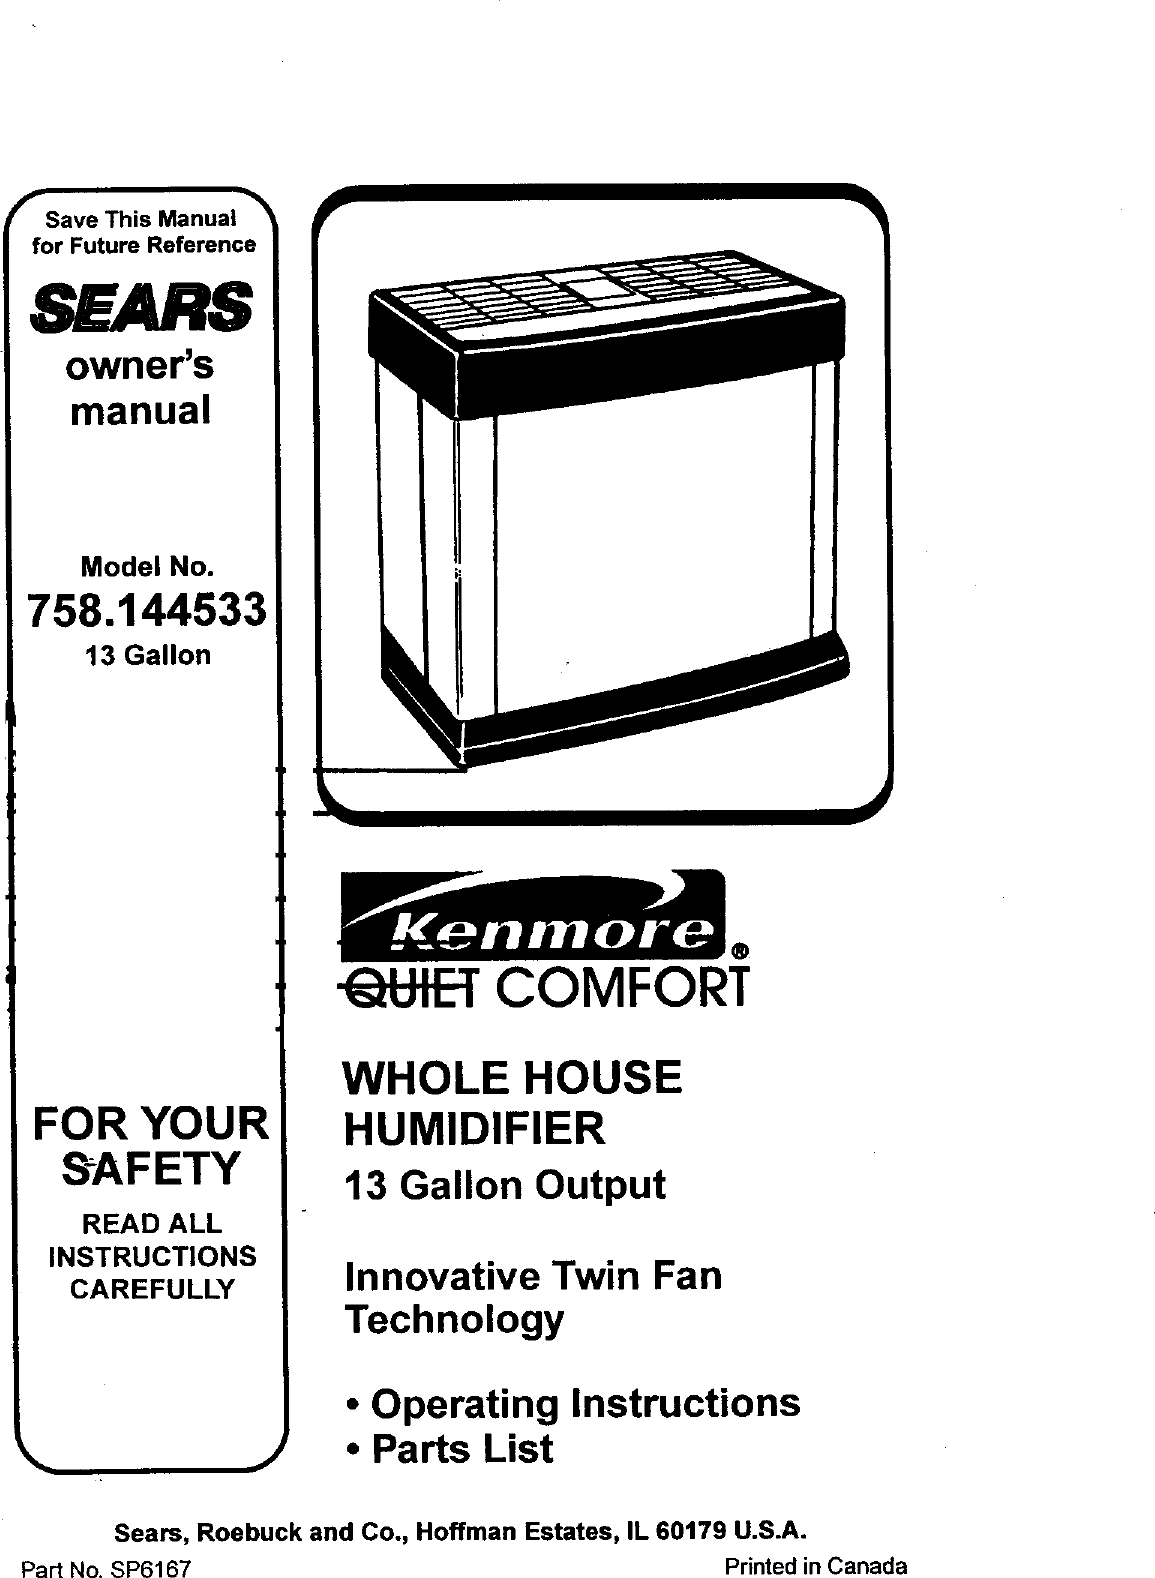 Sears Kemore 758 144533 Users Manual